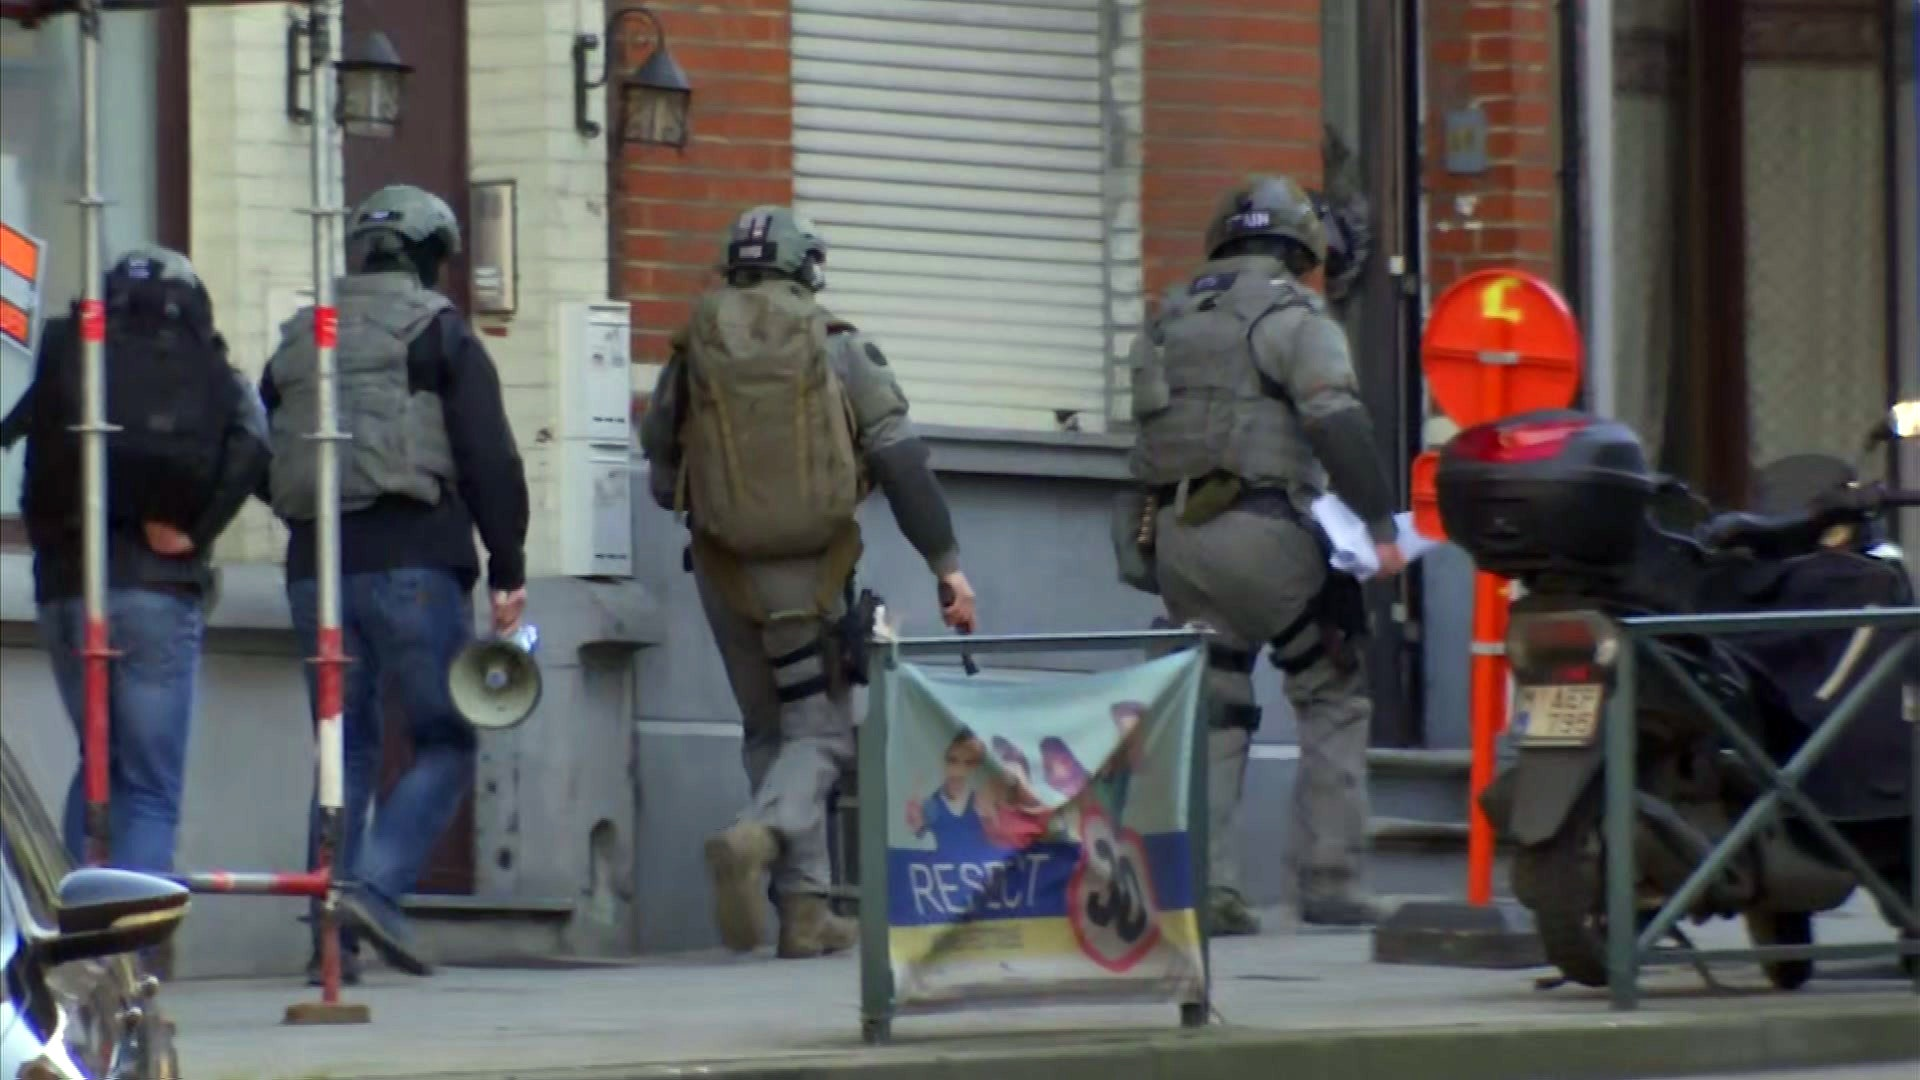 Police operation in Brussels, terrorism ruled out